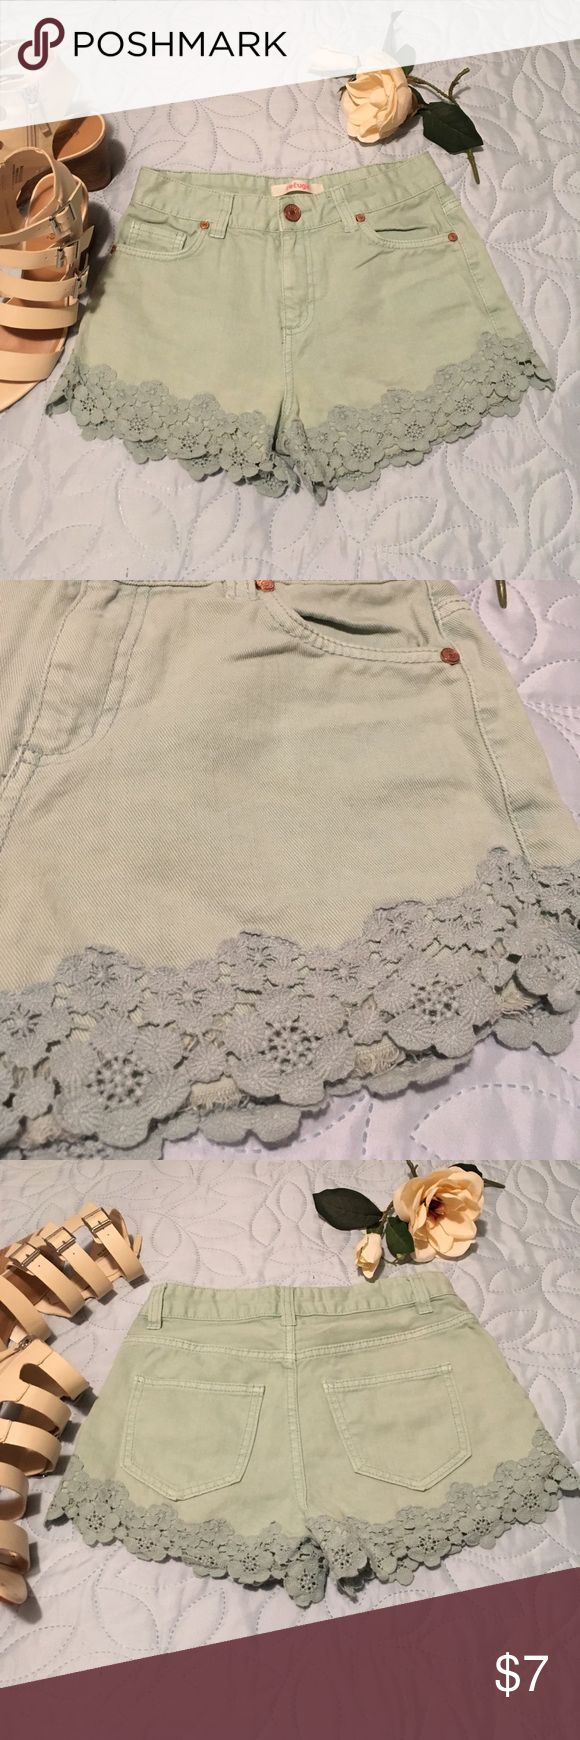 Mint Lace Hem Shorts Adorable light blue/green shorts with lace trim. Perfect condition. Top available in other post. Bundle and save! Shorts